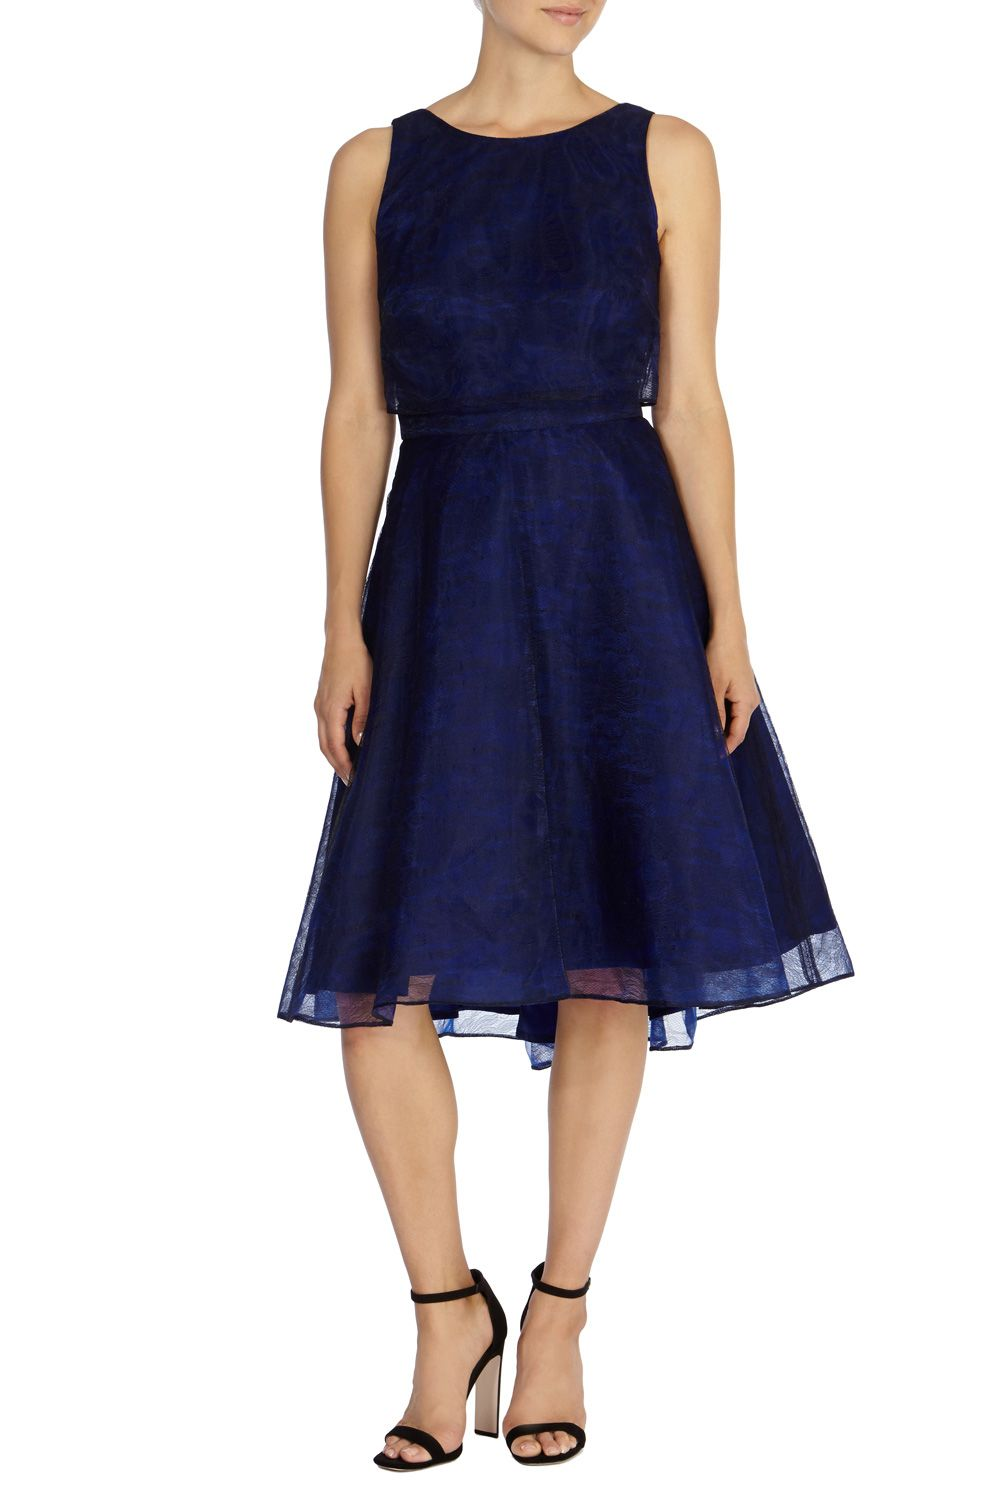 All Dresses | Blues WHISTAN LACE DRESS D | Coast Stores Limited